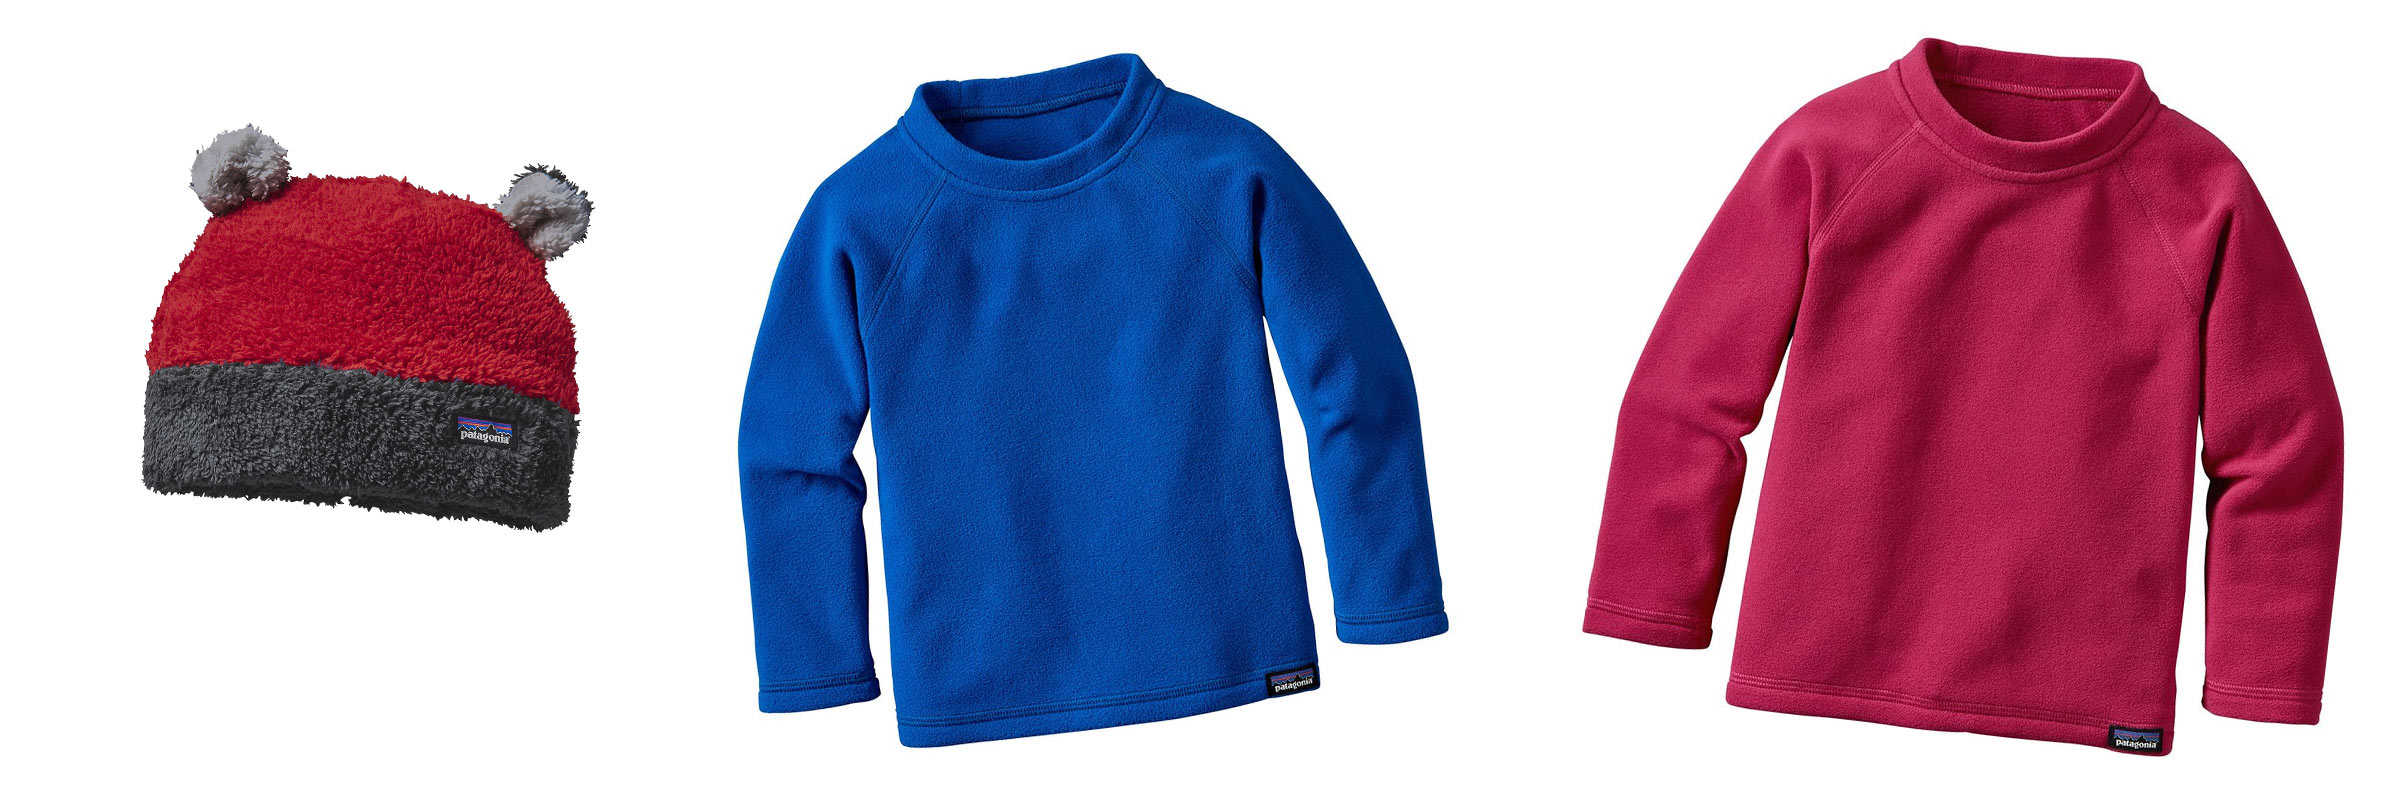 patagonia bluesign baby products